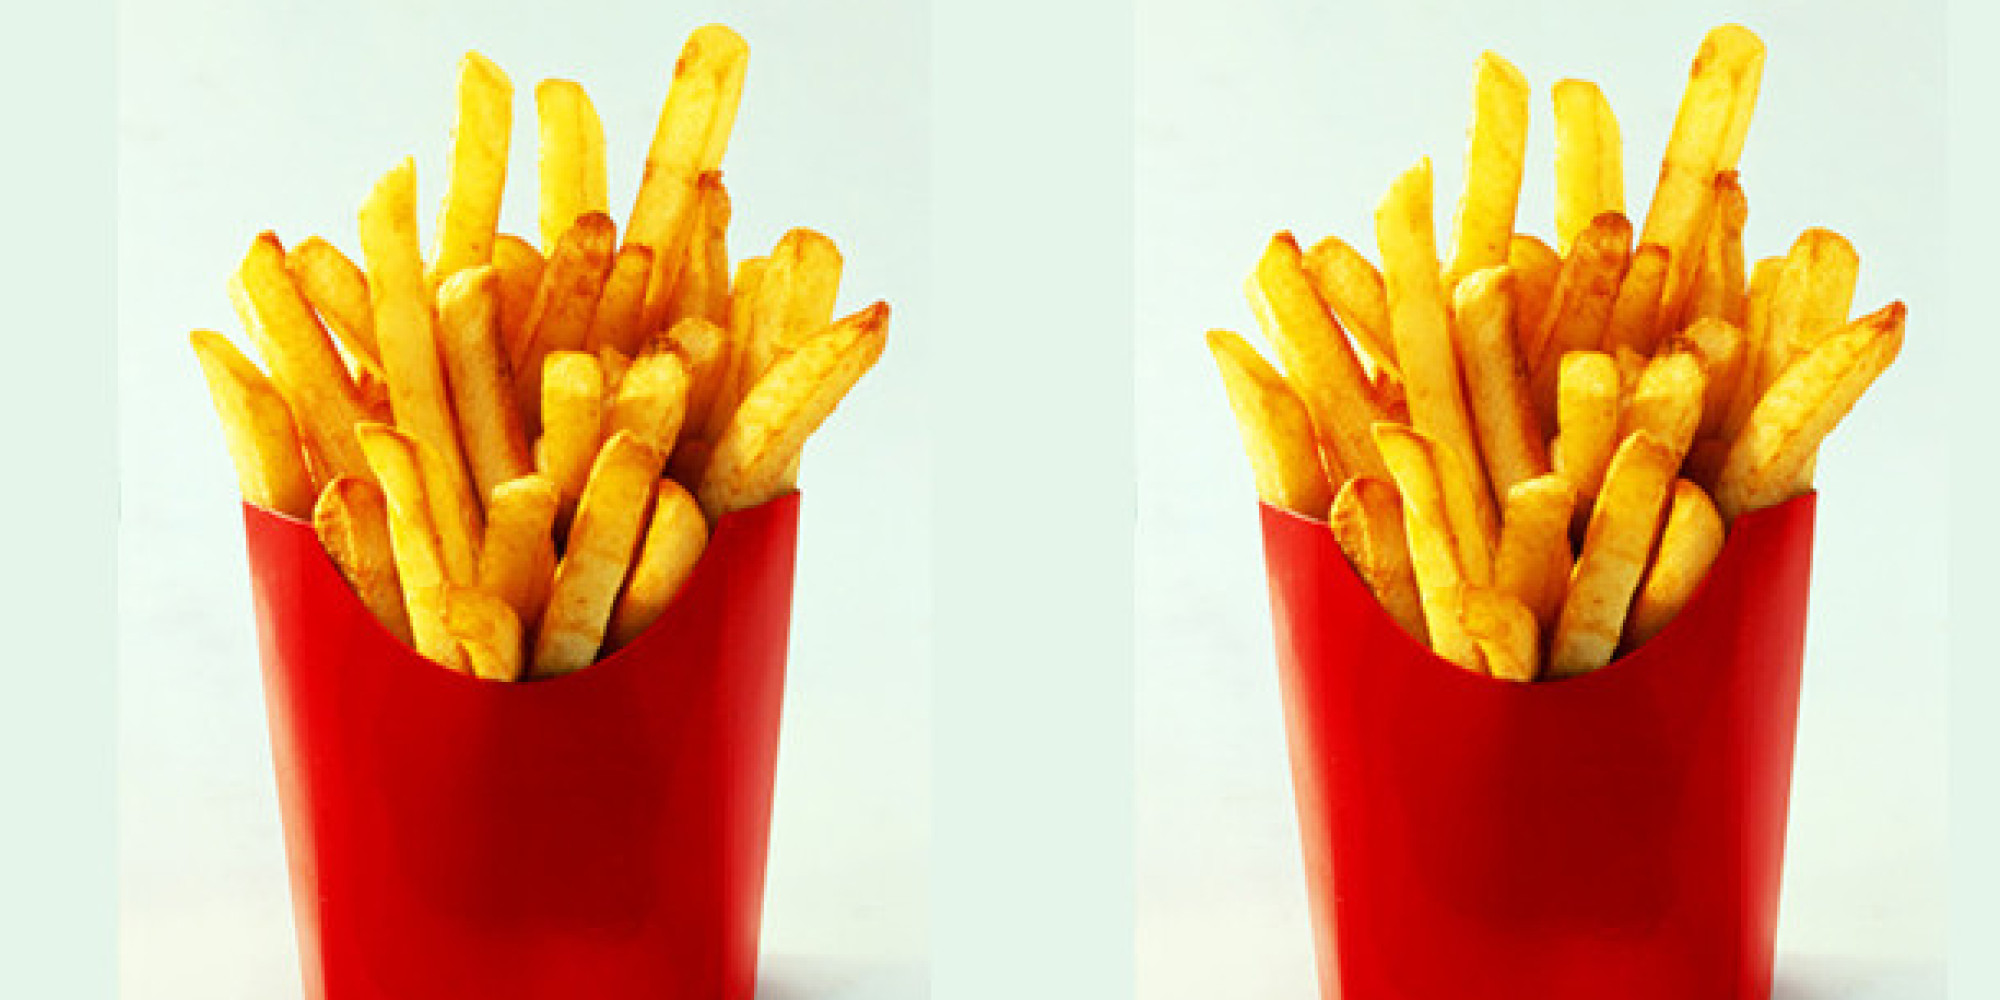 Where To Find The Healthiest Fast Food Fries